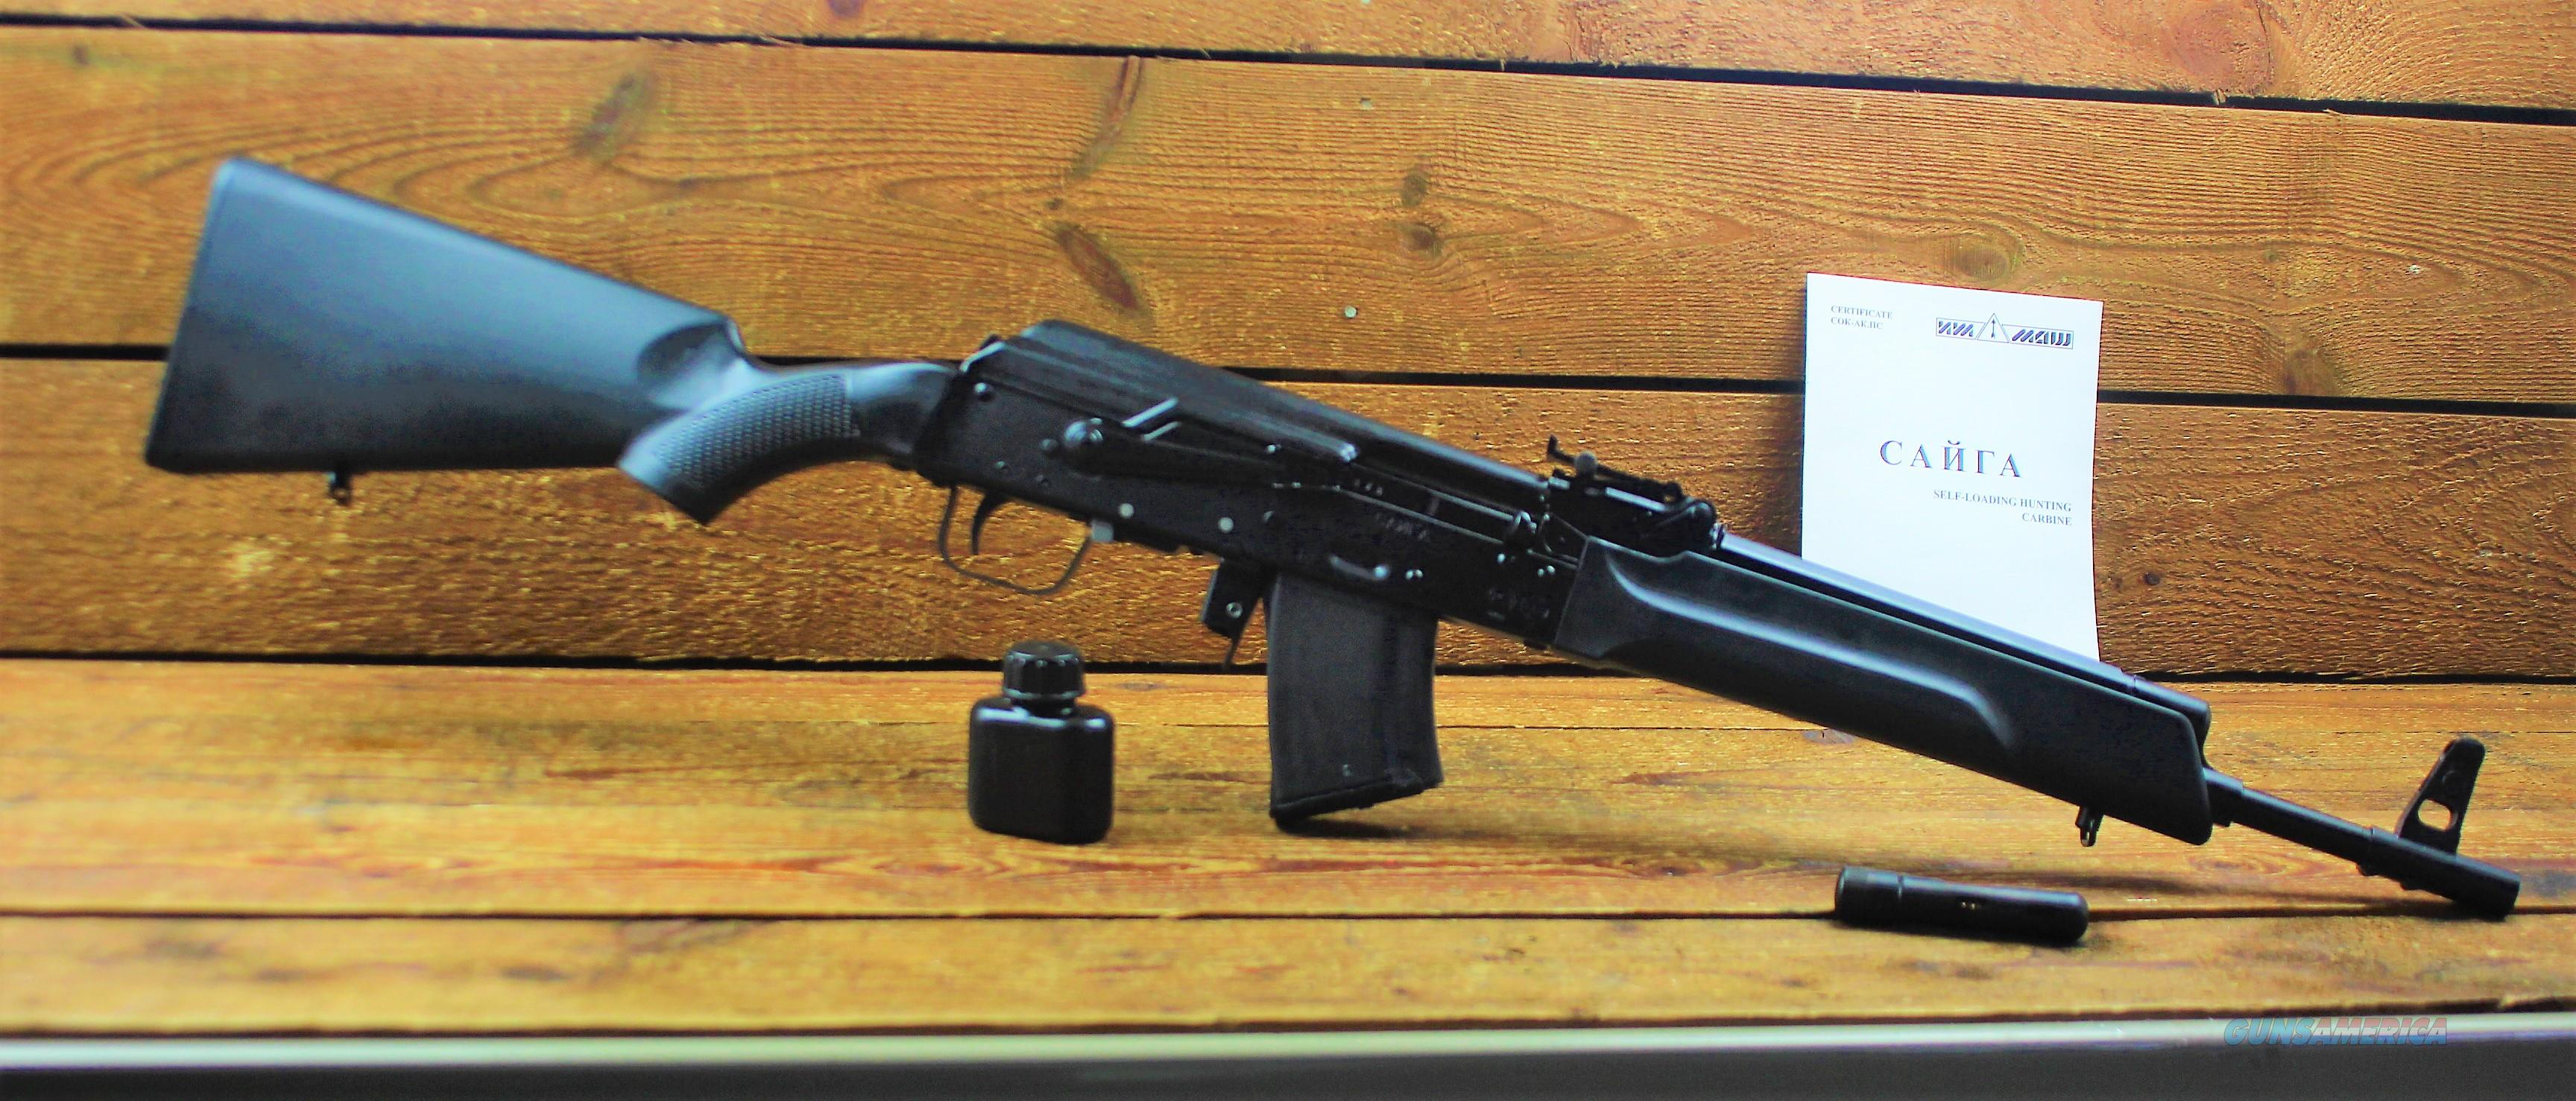 RARE BANNED RWC Group SAIGA IZ132l AK-47 AK47 7.62X39 16 BBL 10RD EASY PAY $105  Guns > Rifles > AK-47 Rifles (and copies) > Full Stock